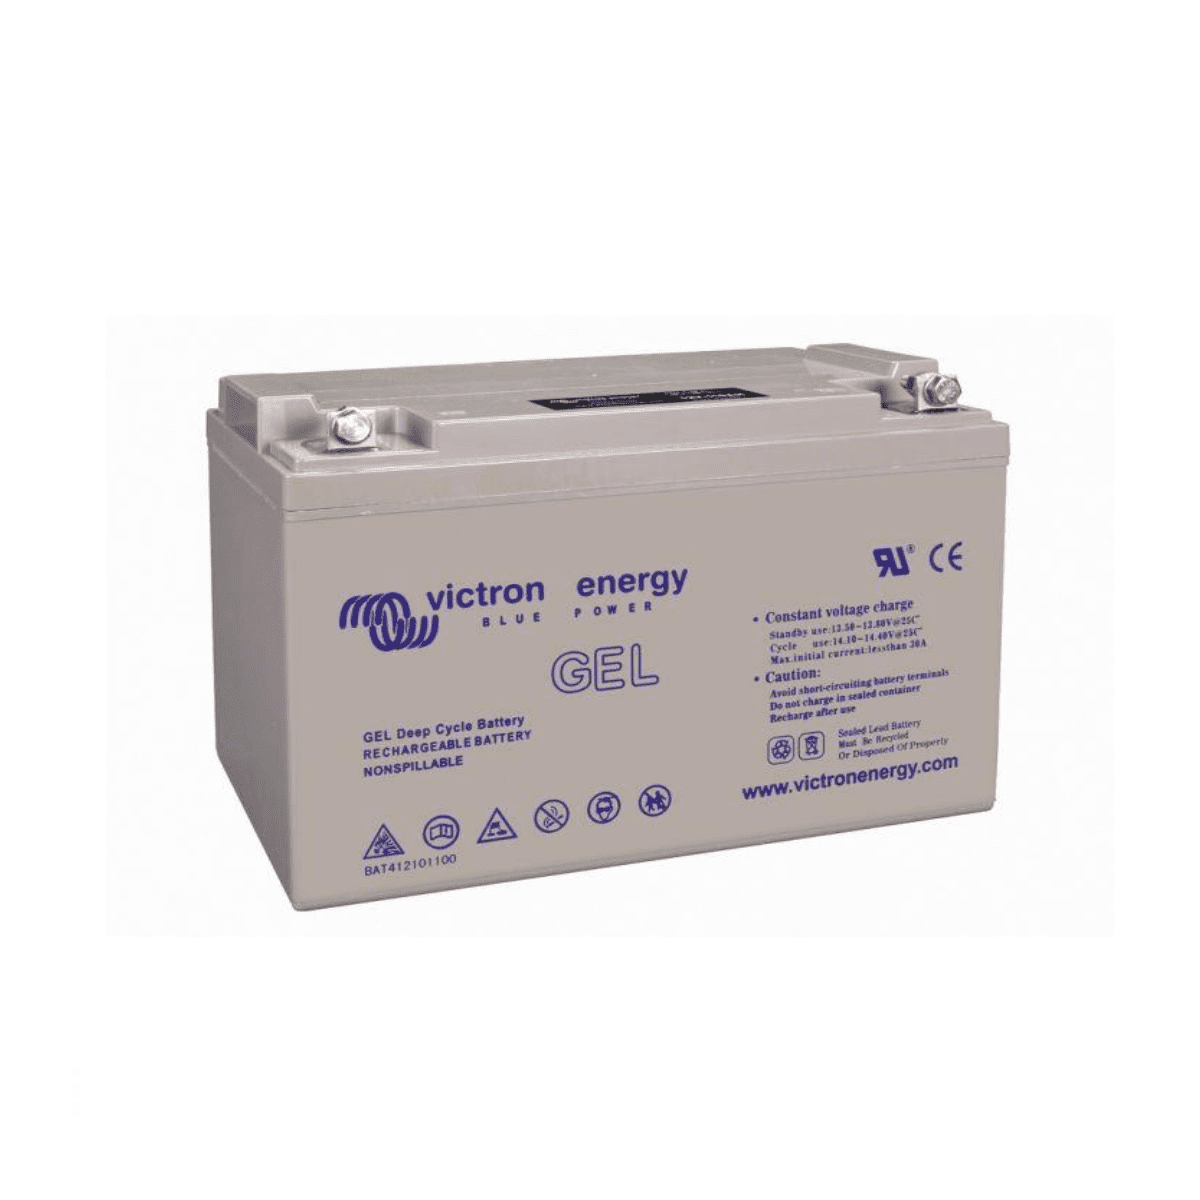 Victron 12V 110Ah GEL Deep Cycle Battery on Sale